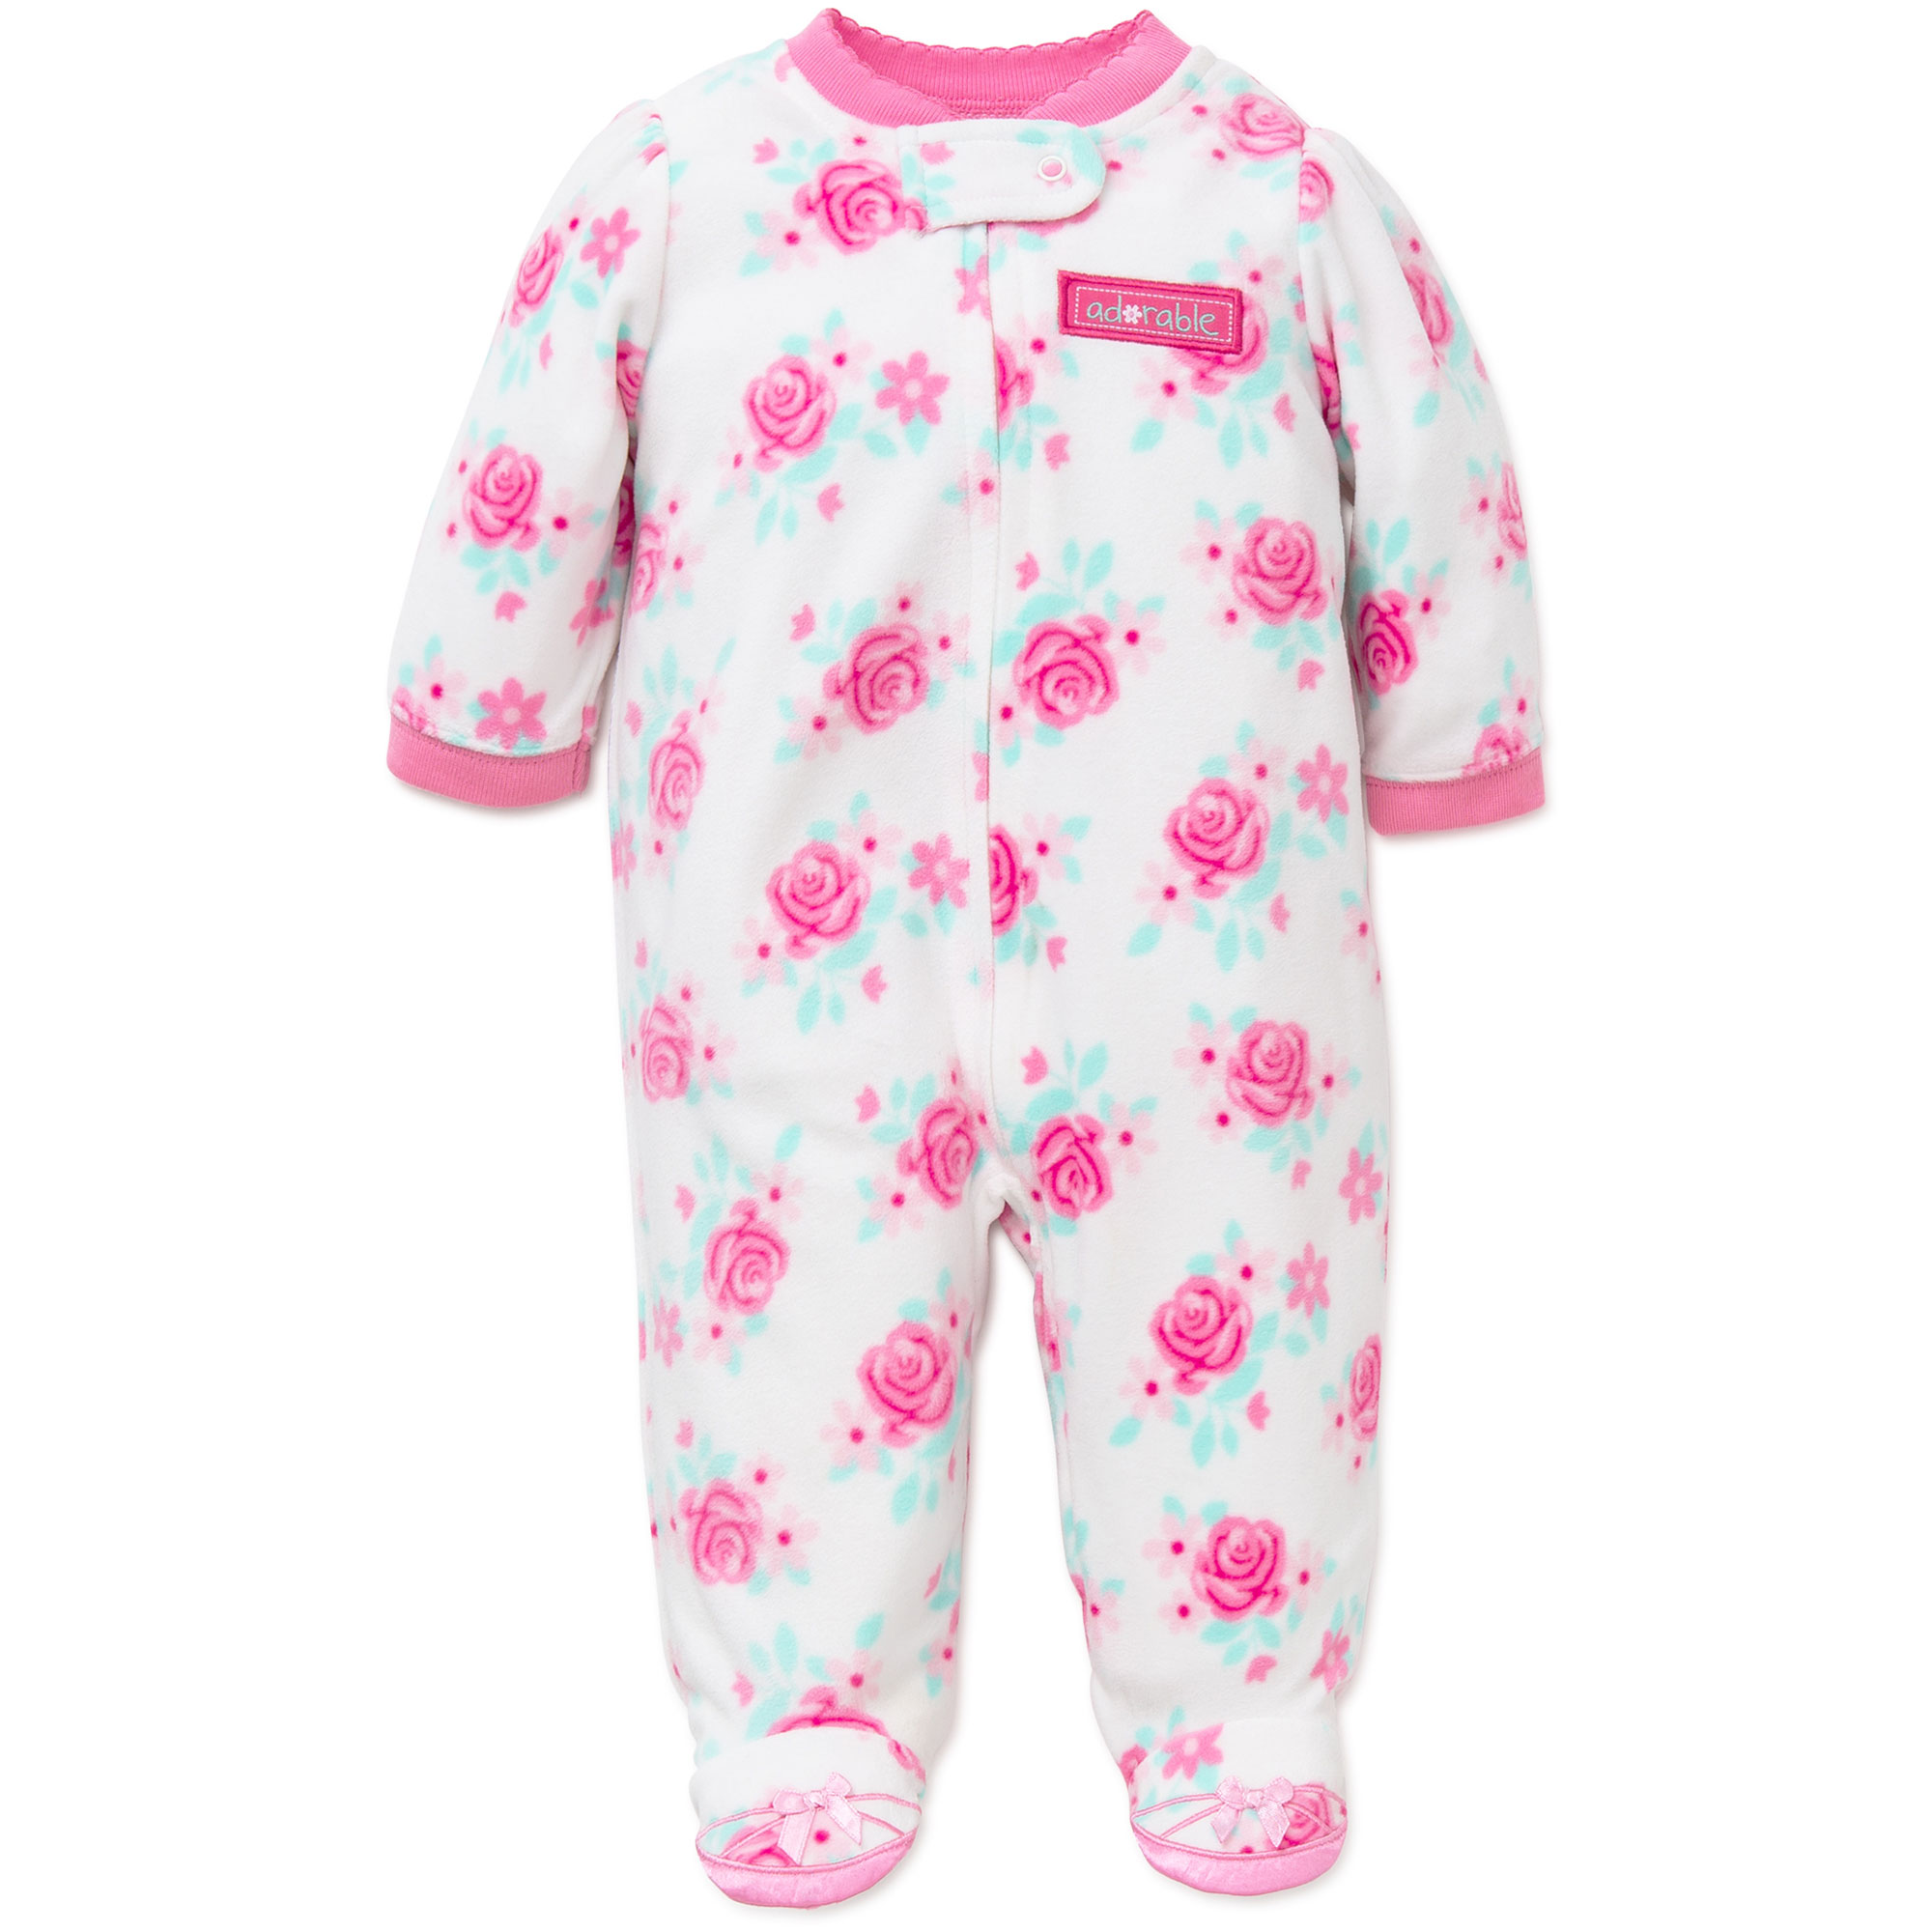 patrick sleepers sleeper piece print s one for product do browse st baby day footed